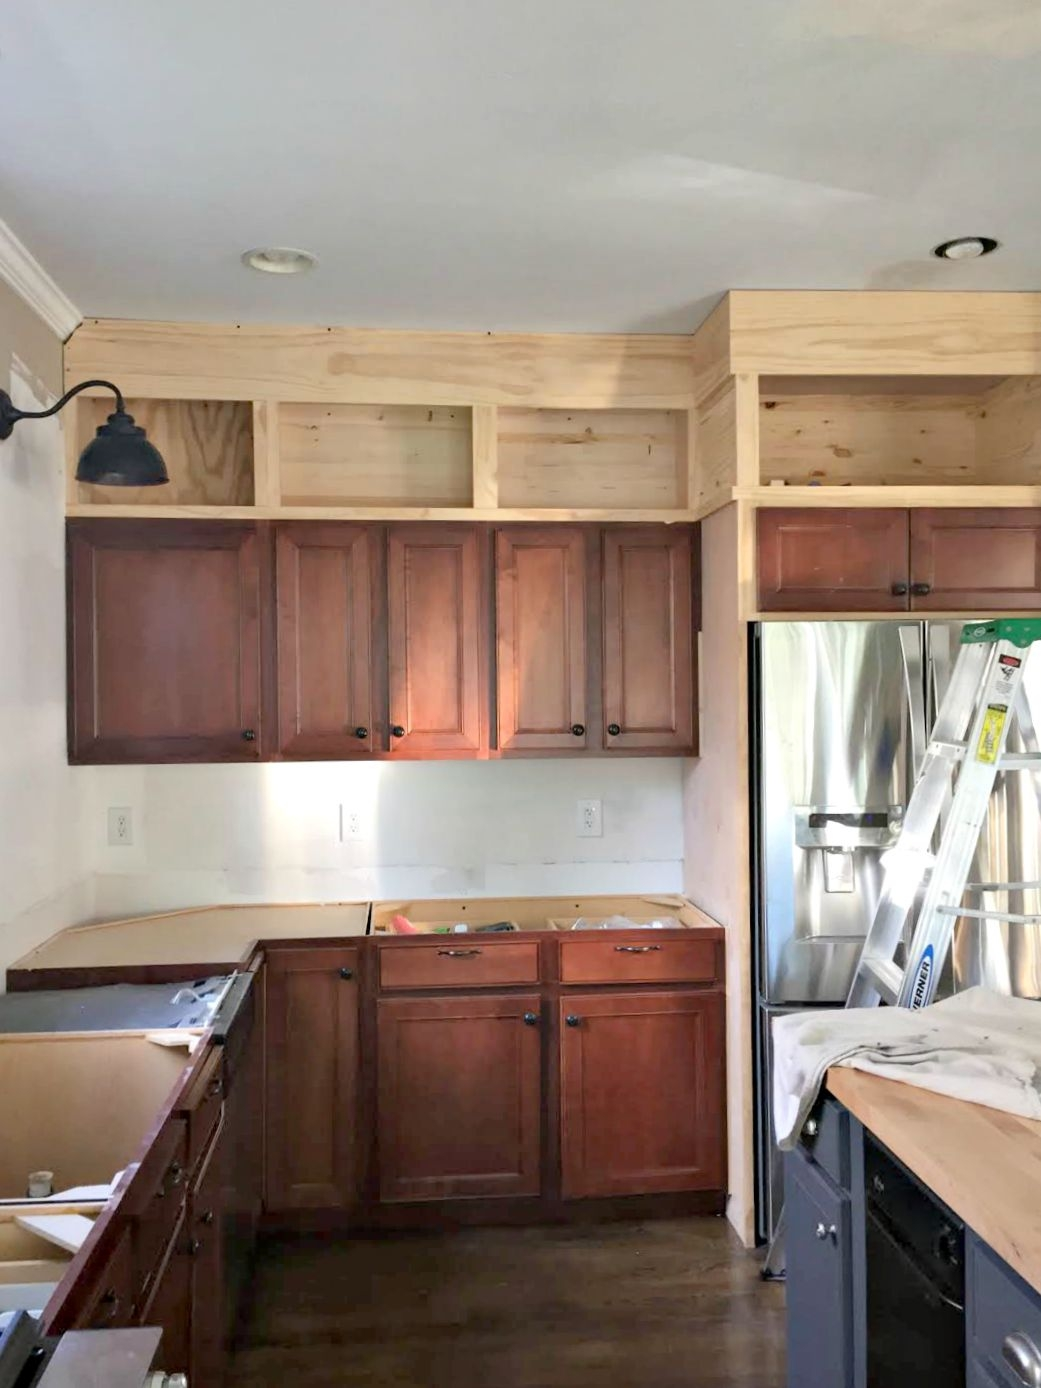 Ideas To Extend Kitchen Cabinets To Ceiling